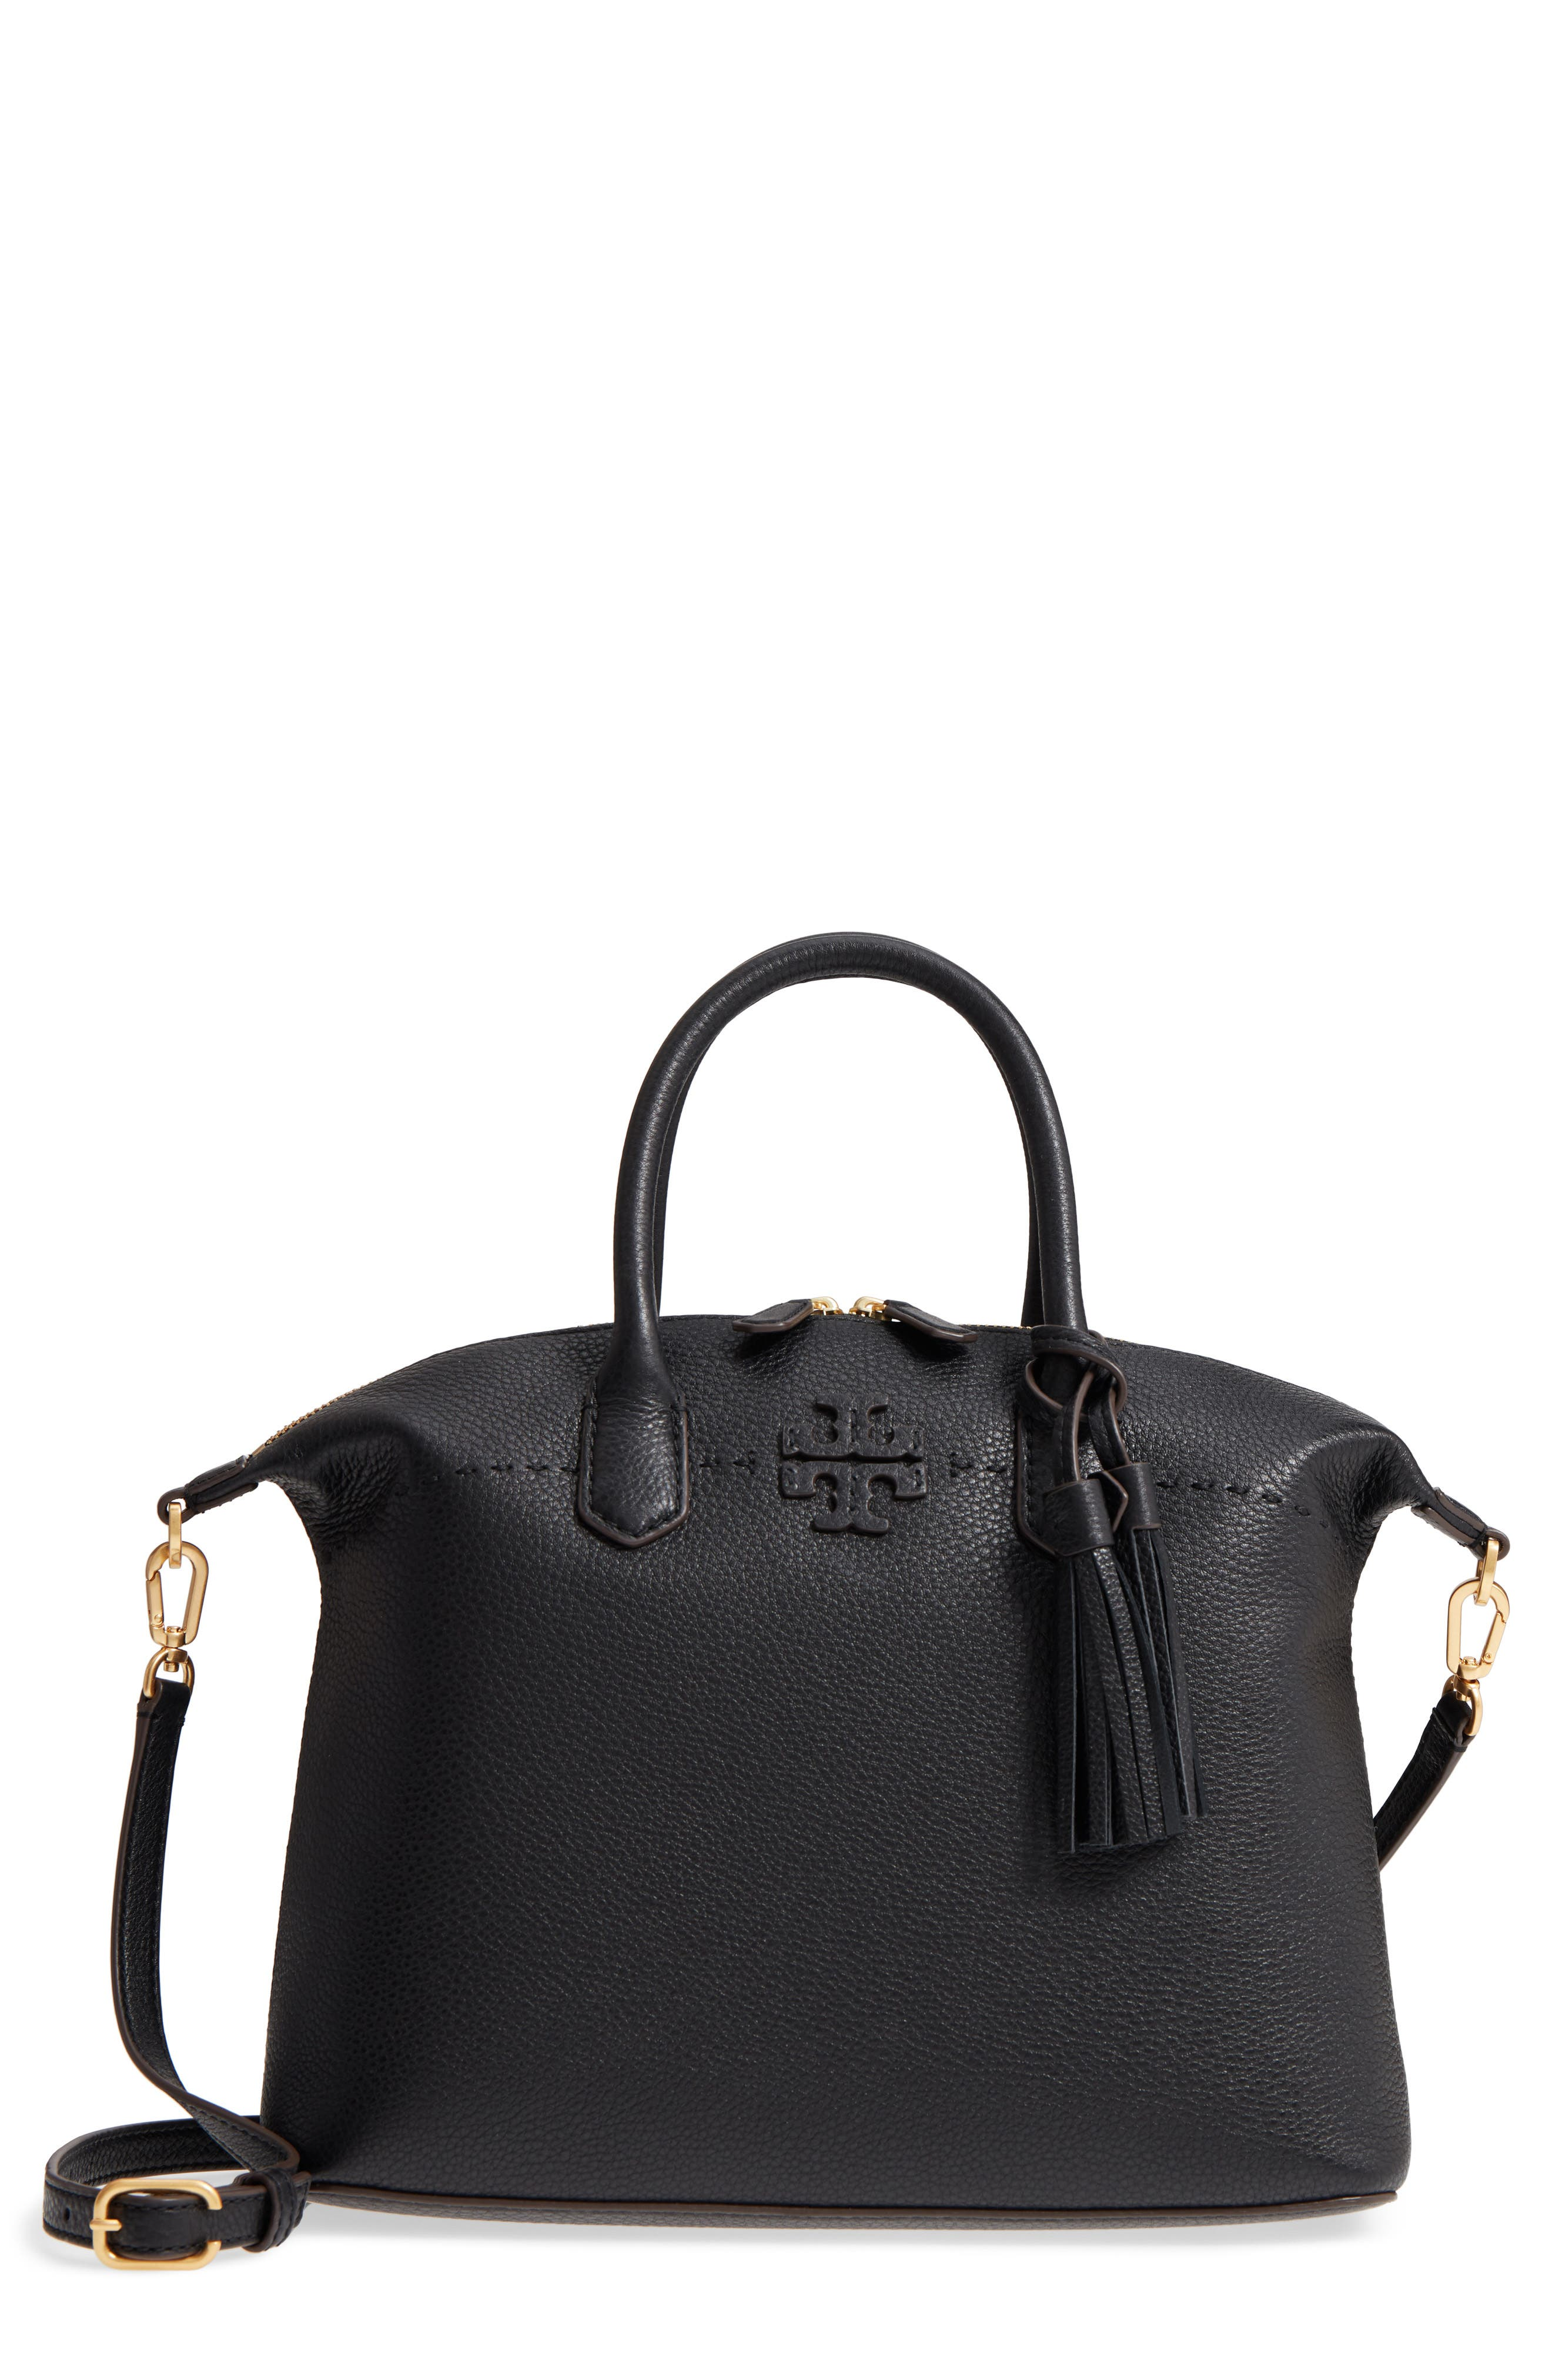 McGraw Slouchy Leather Satchel,                             Main thumbnail 1, color,                             Black